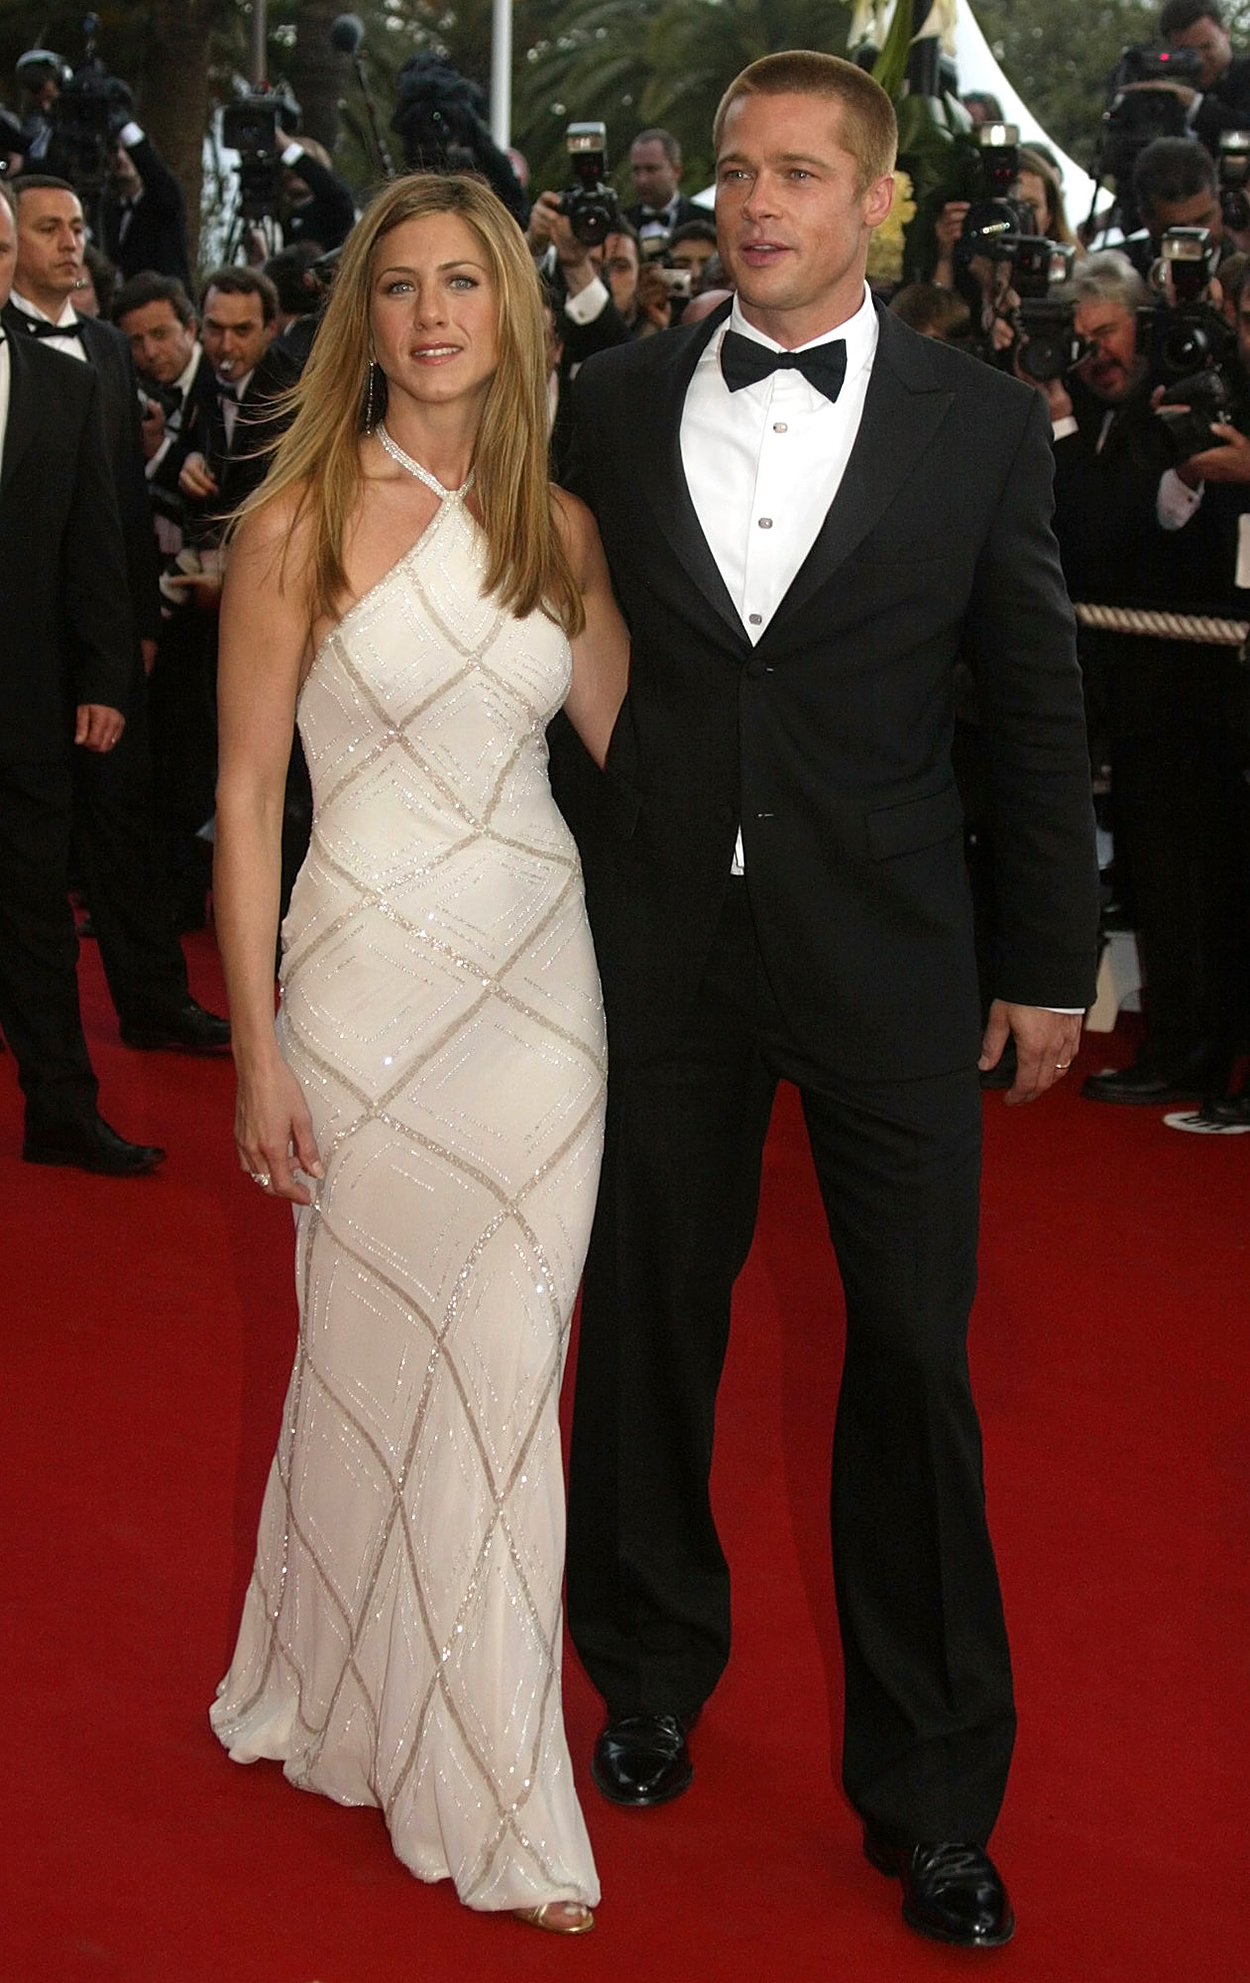 Jennifer Aniston and Brad Pitt's best red carpet moments: pictures